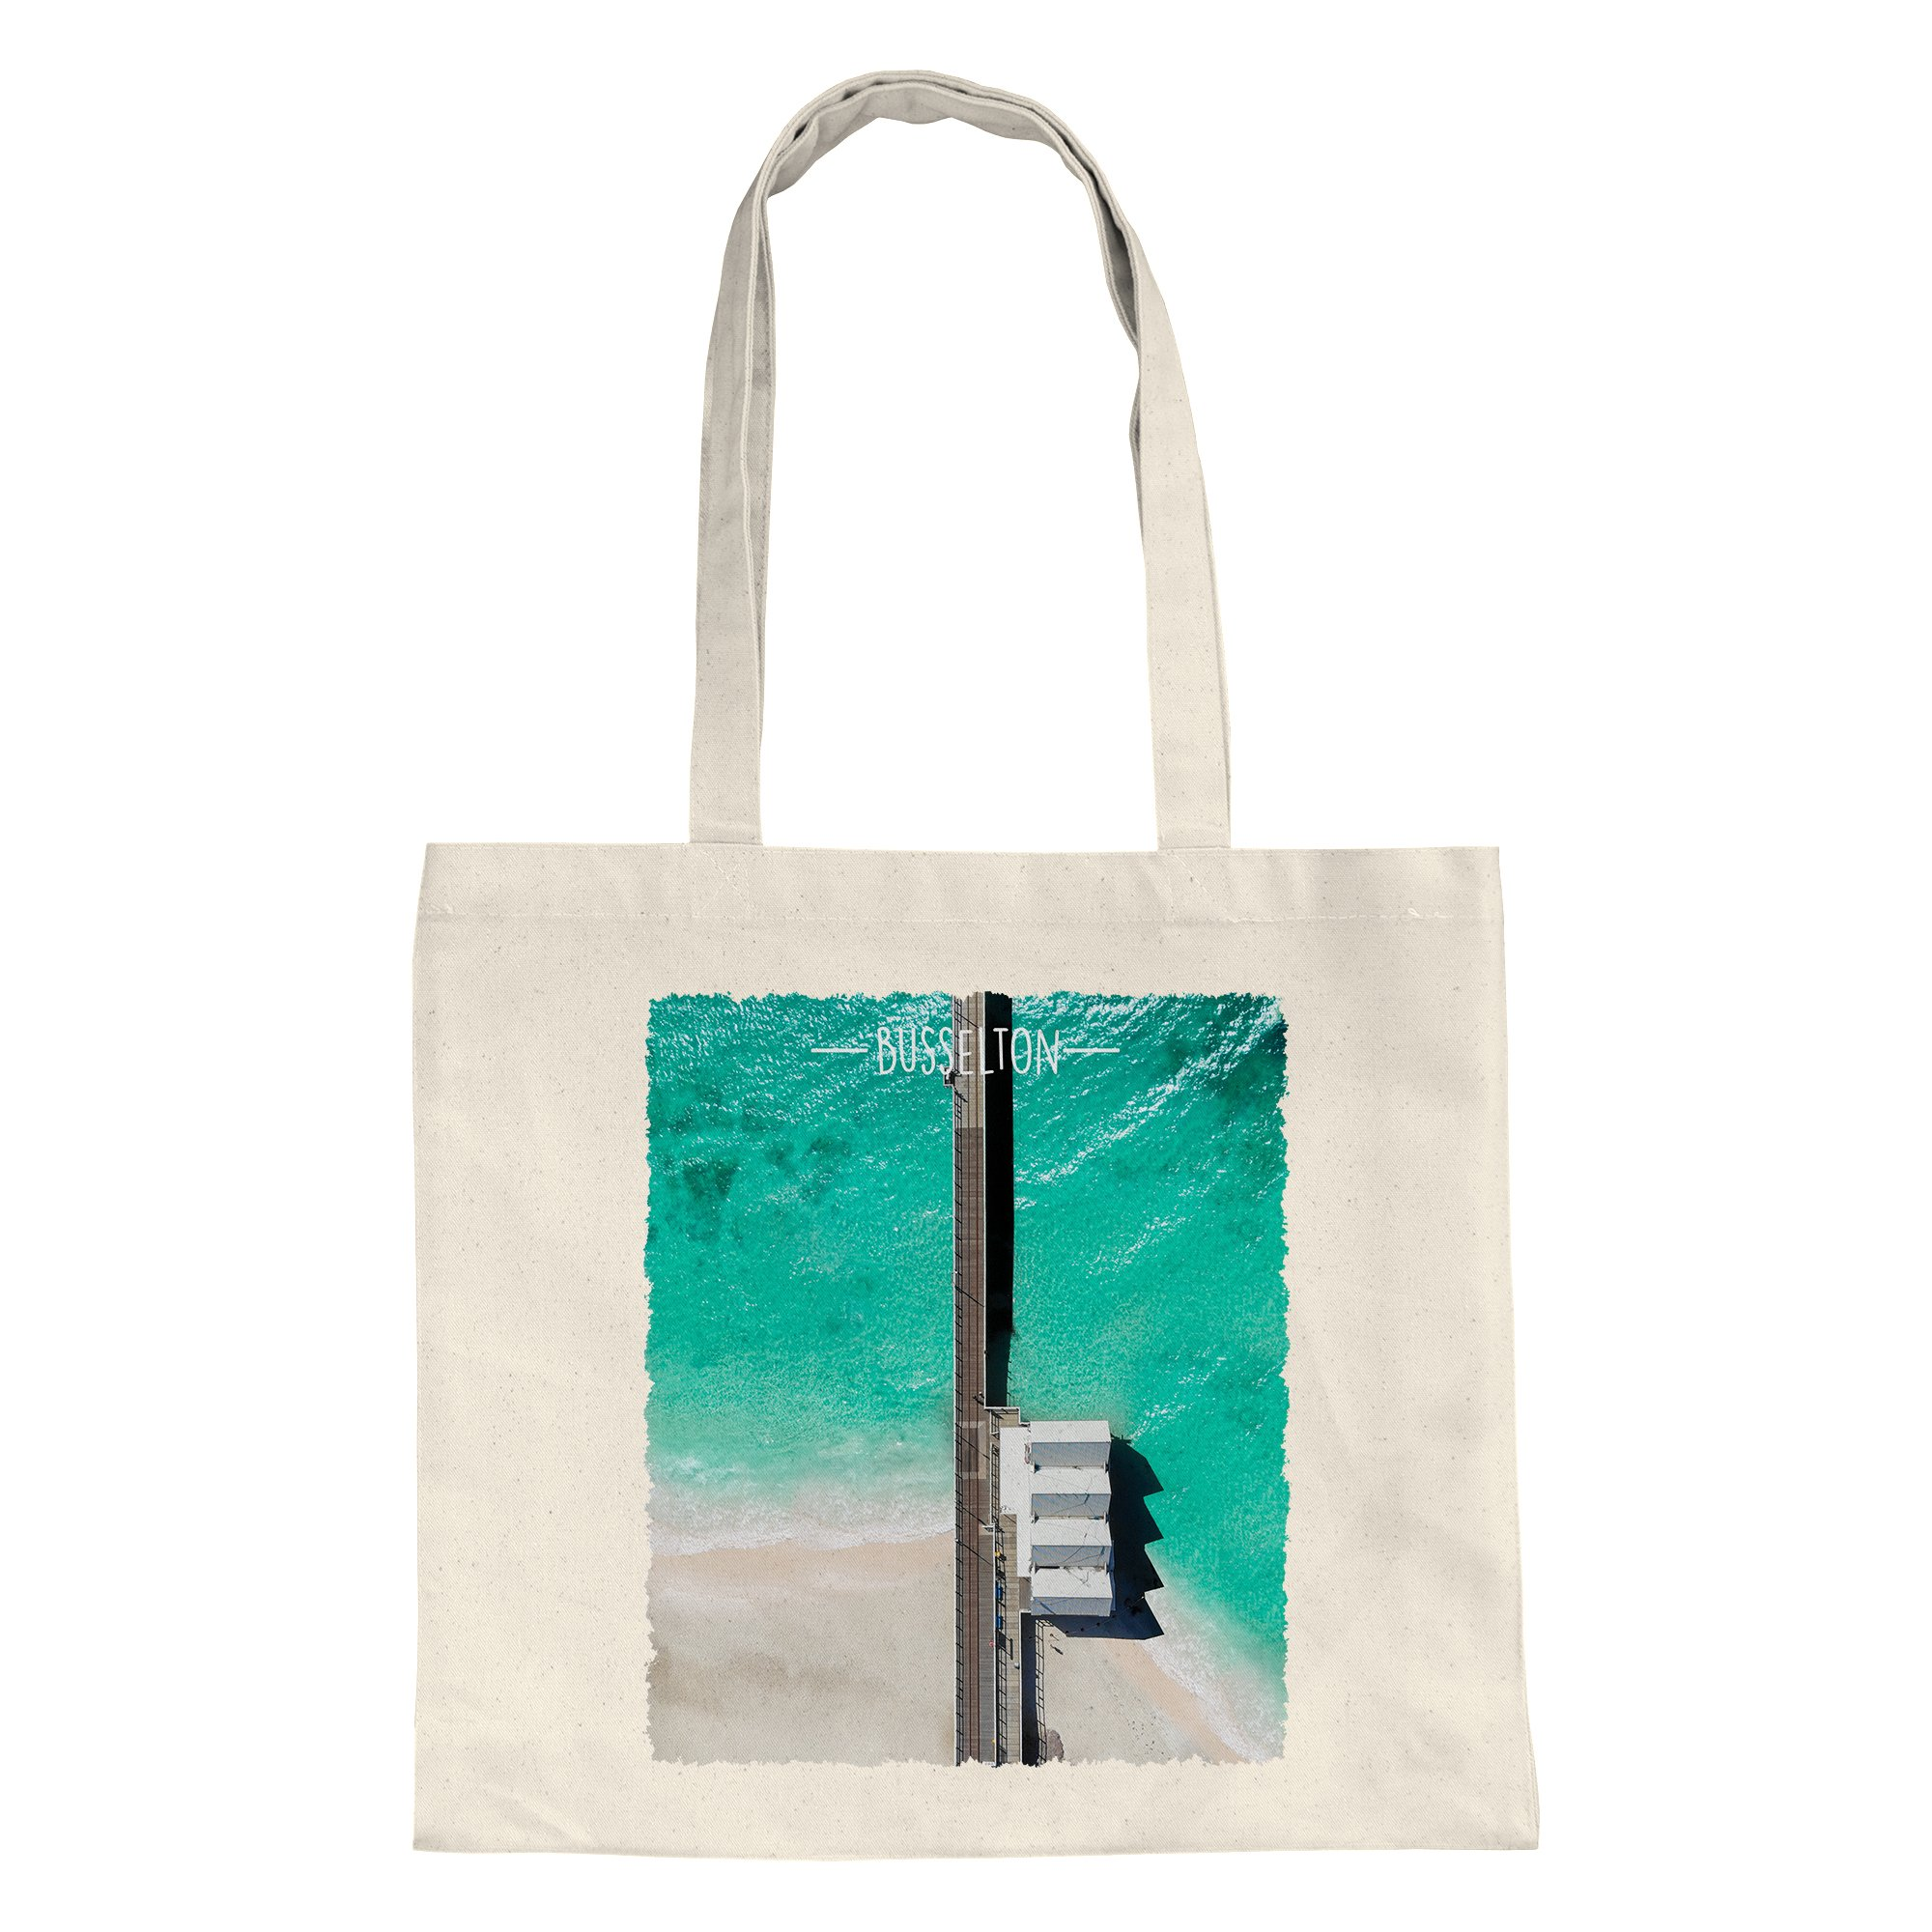 tote-shopping-bag-busseltong-jetty_1024x1024@2x